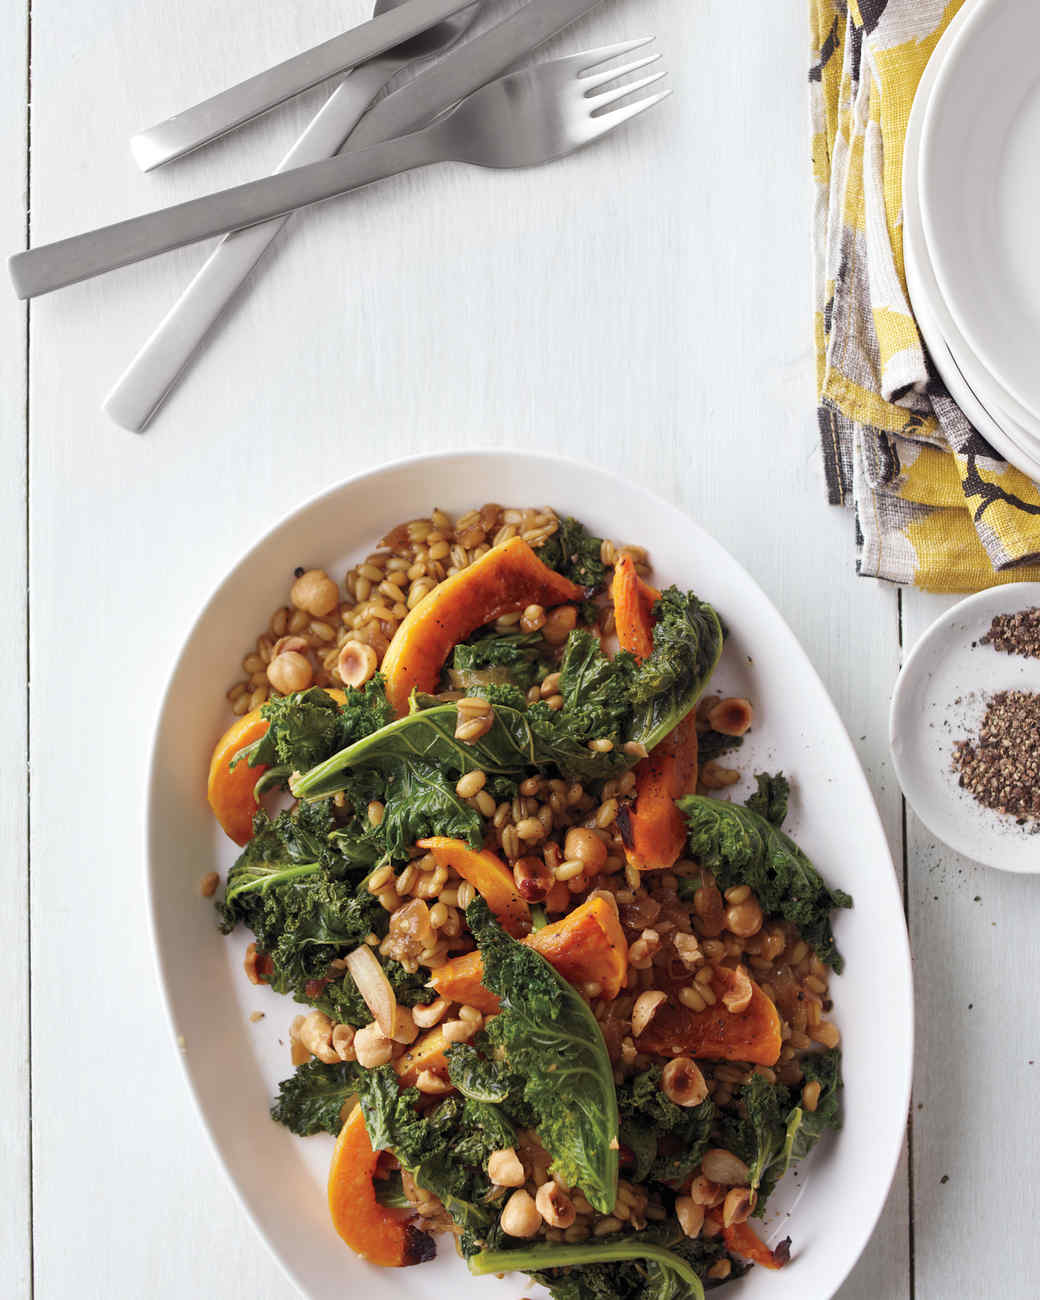 Freekeh with Roasted Butternut Squash, Seared Kale, and Caramelized Onion Jam